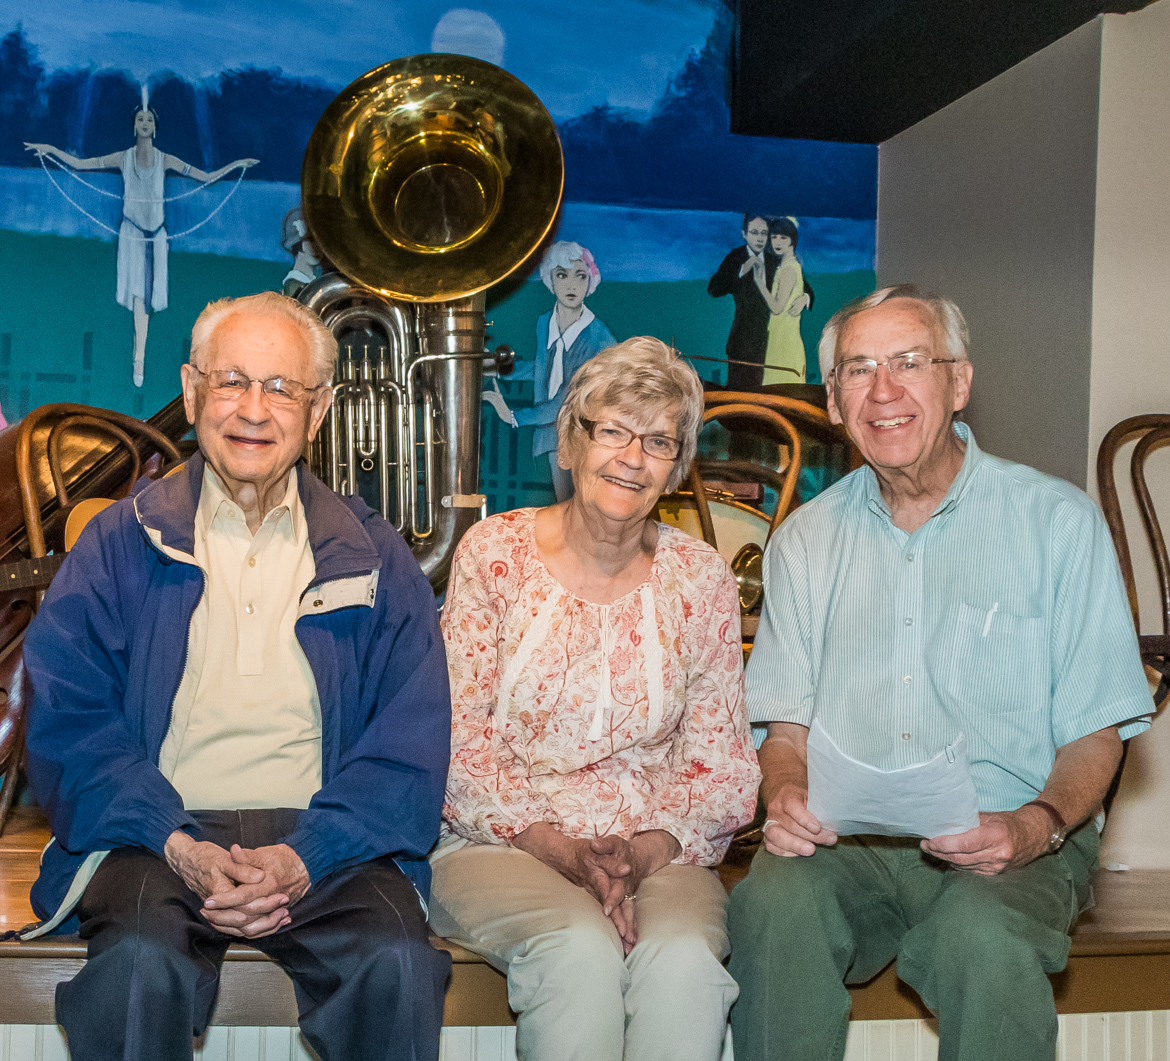 Bix Beiderbecke Museum & Archive organizers (from left) Howard Braren, Geri Bowers, and Carol Schaefer in front of a re-creation of the Hudson Lake stage.